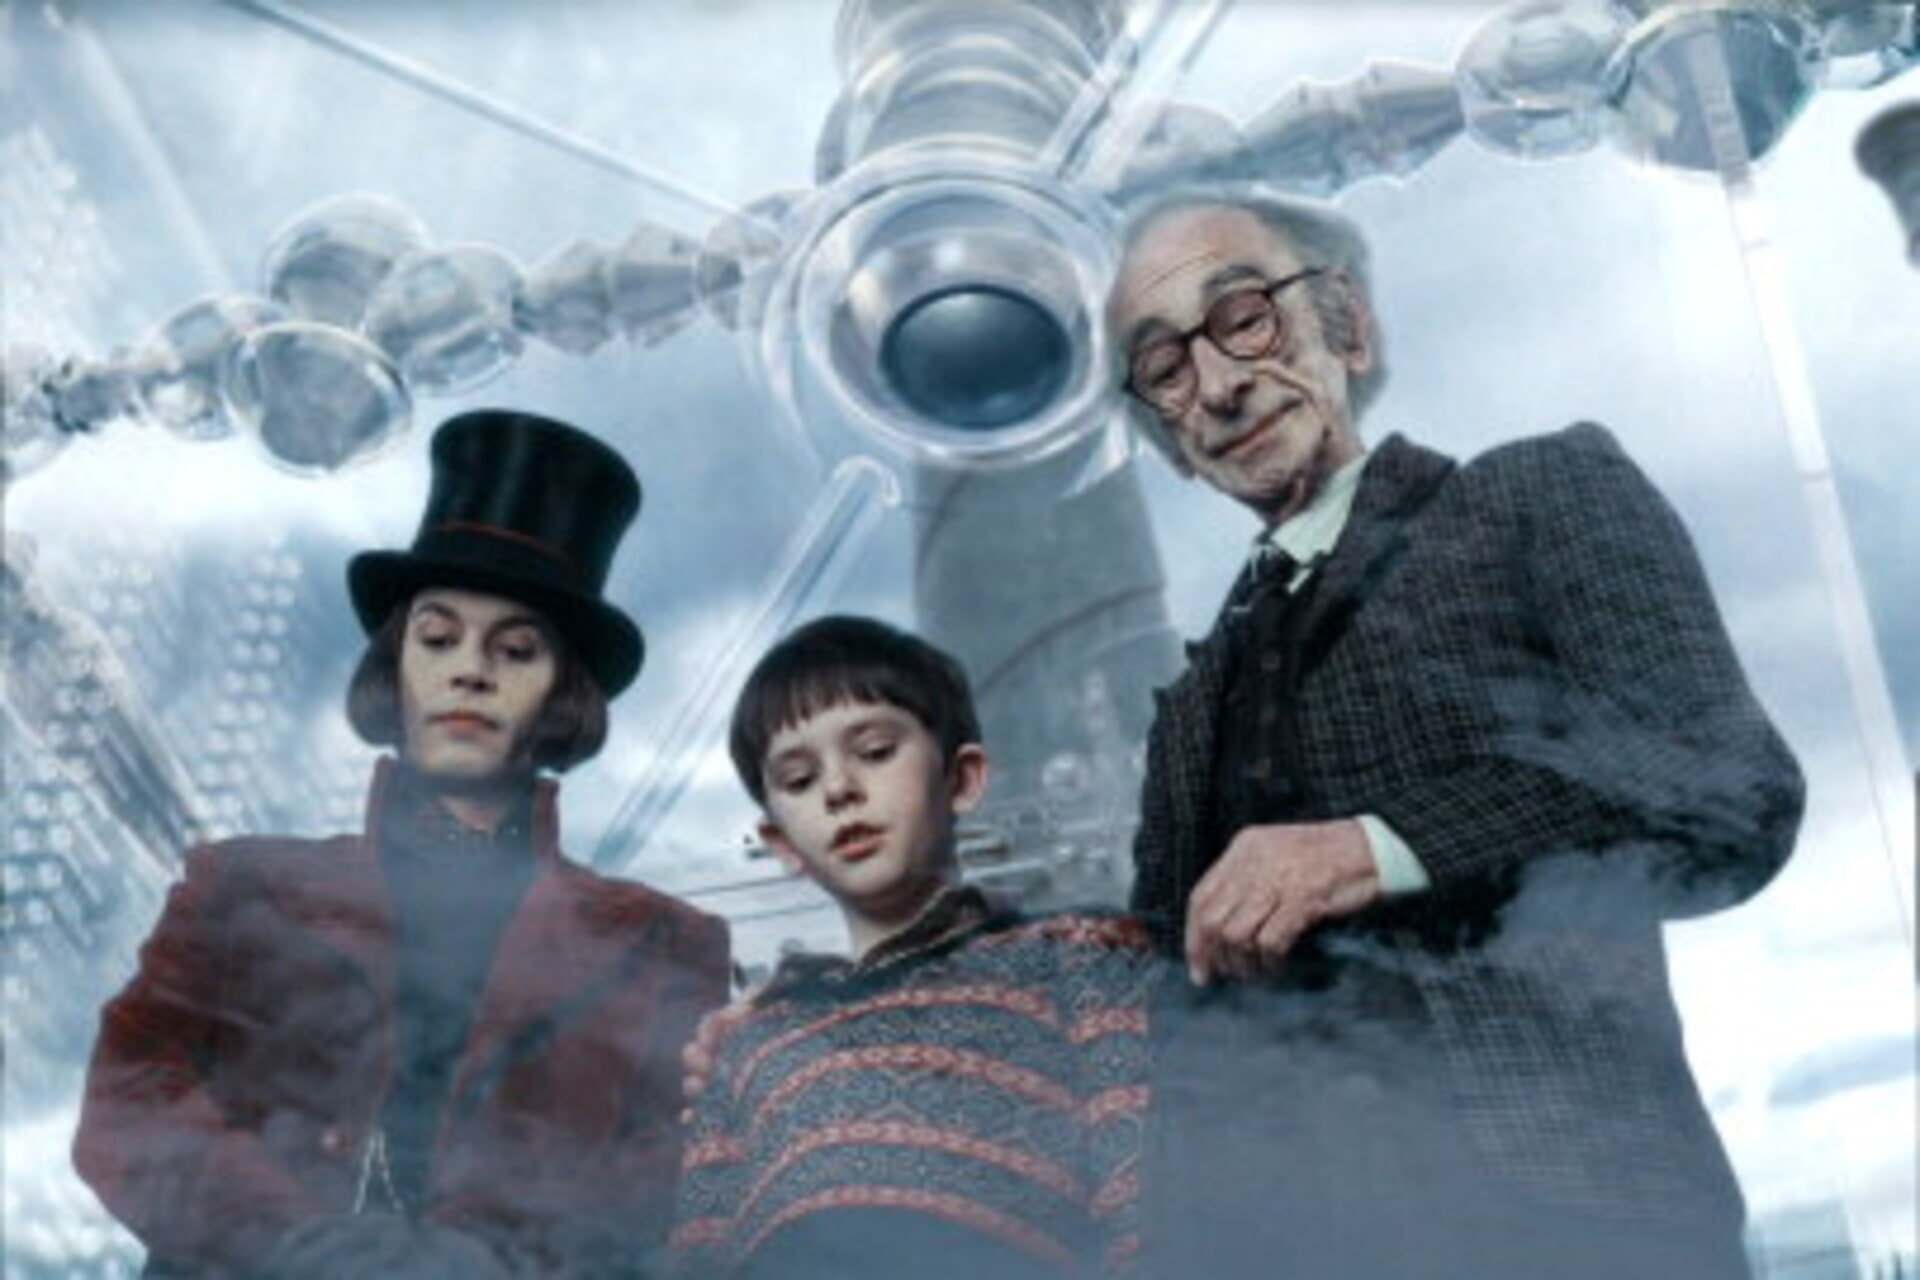 Charlie and the Chocolate Factory - Image 28